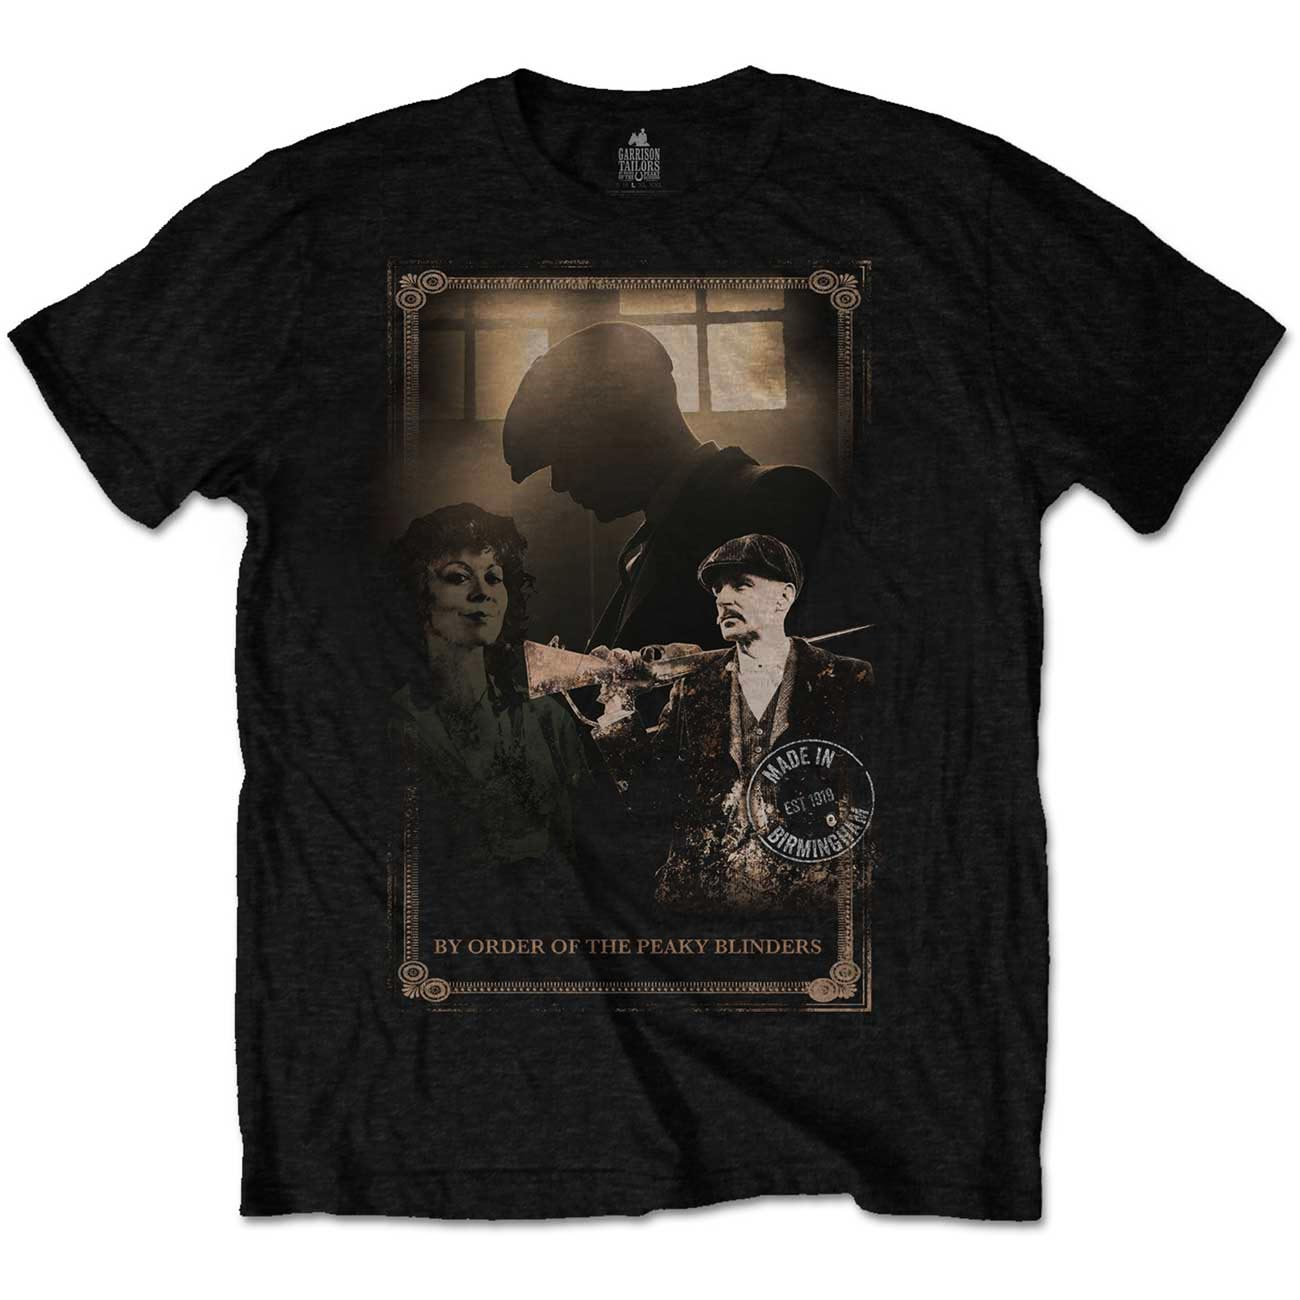 Official-T-Shirt-PEAKY-BLINDERS-Shelby-Brothers-039-Shotgun-039-Black-All-Sizes thumbnail 3